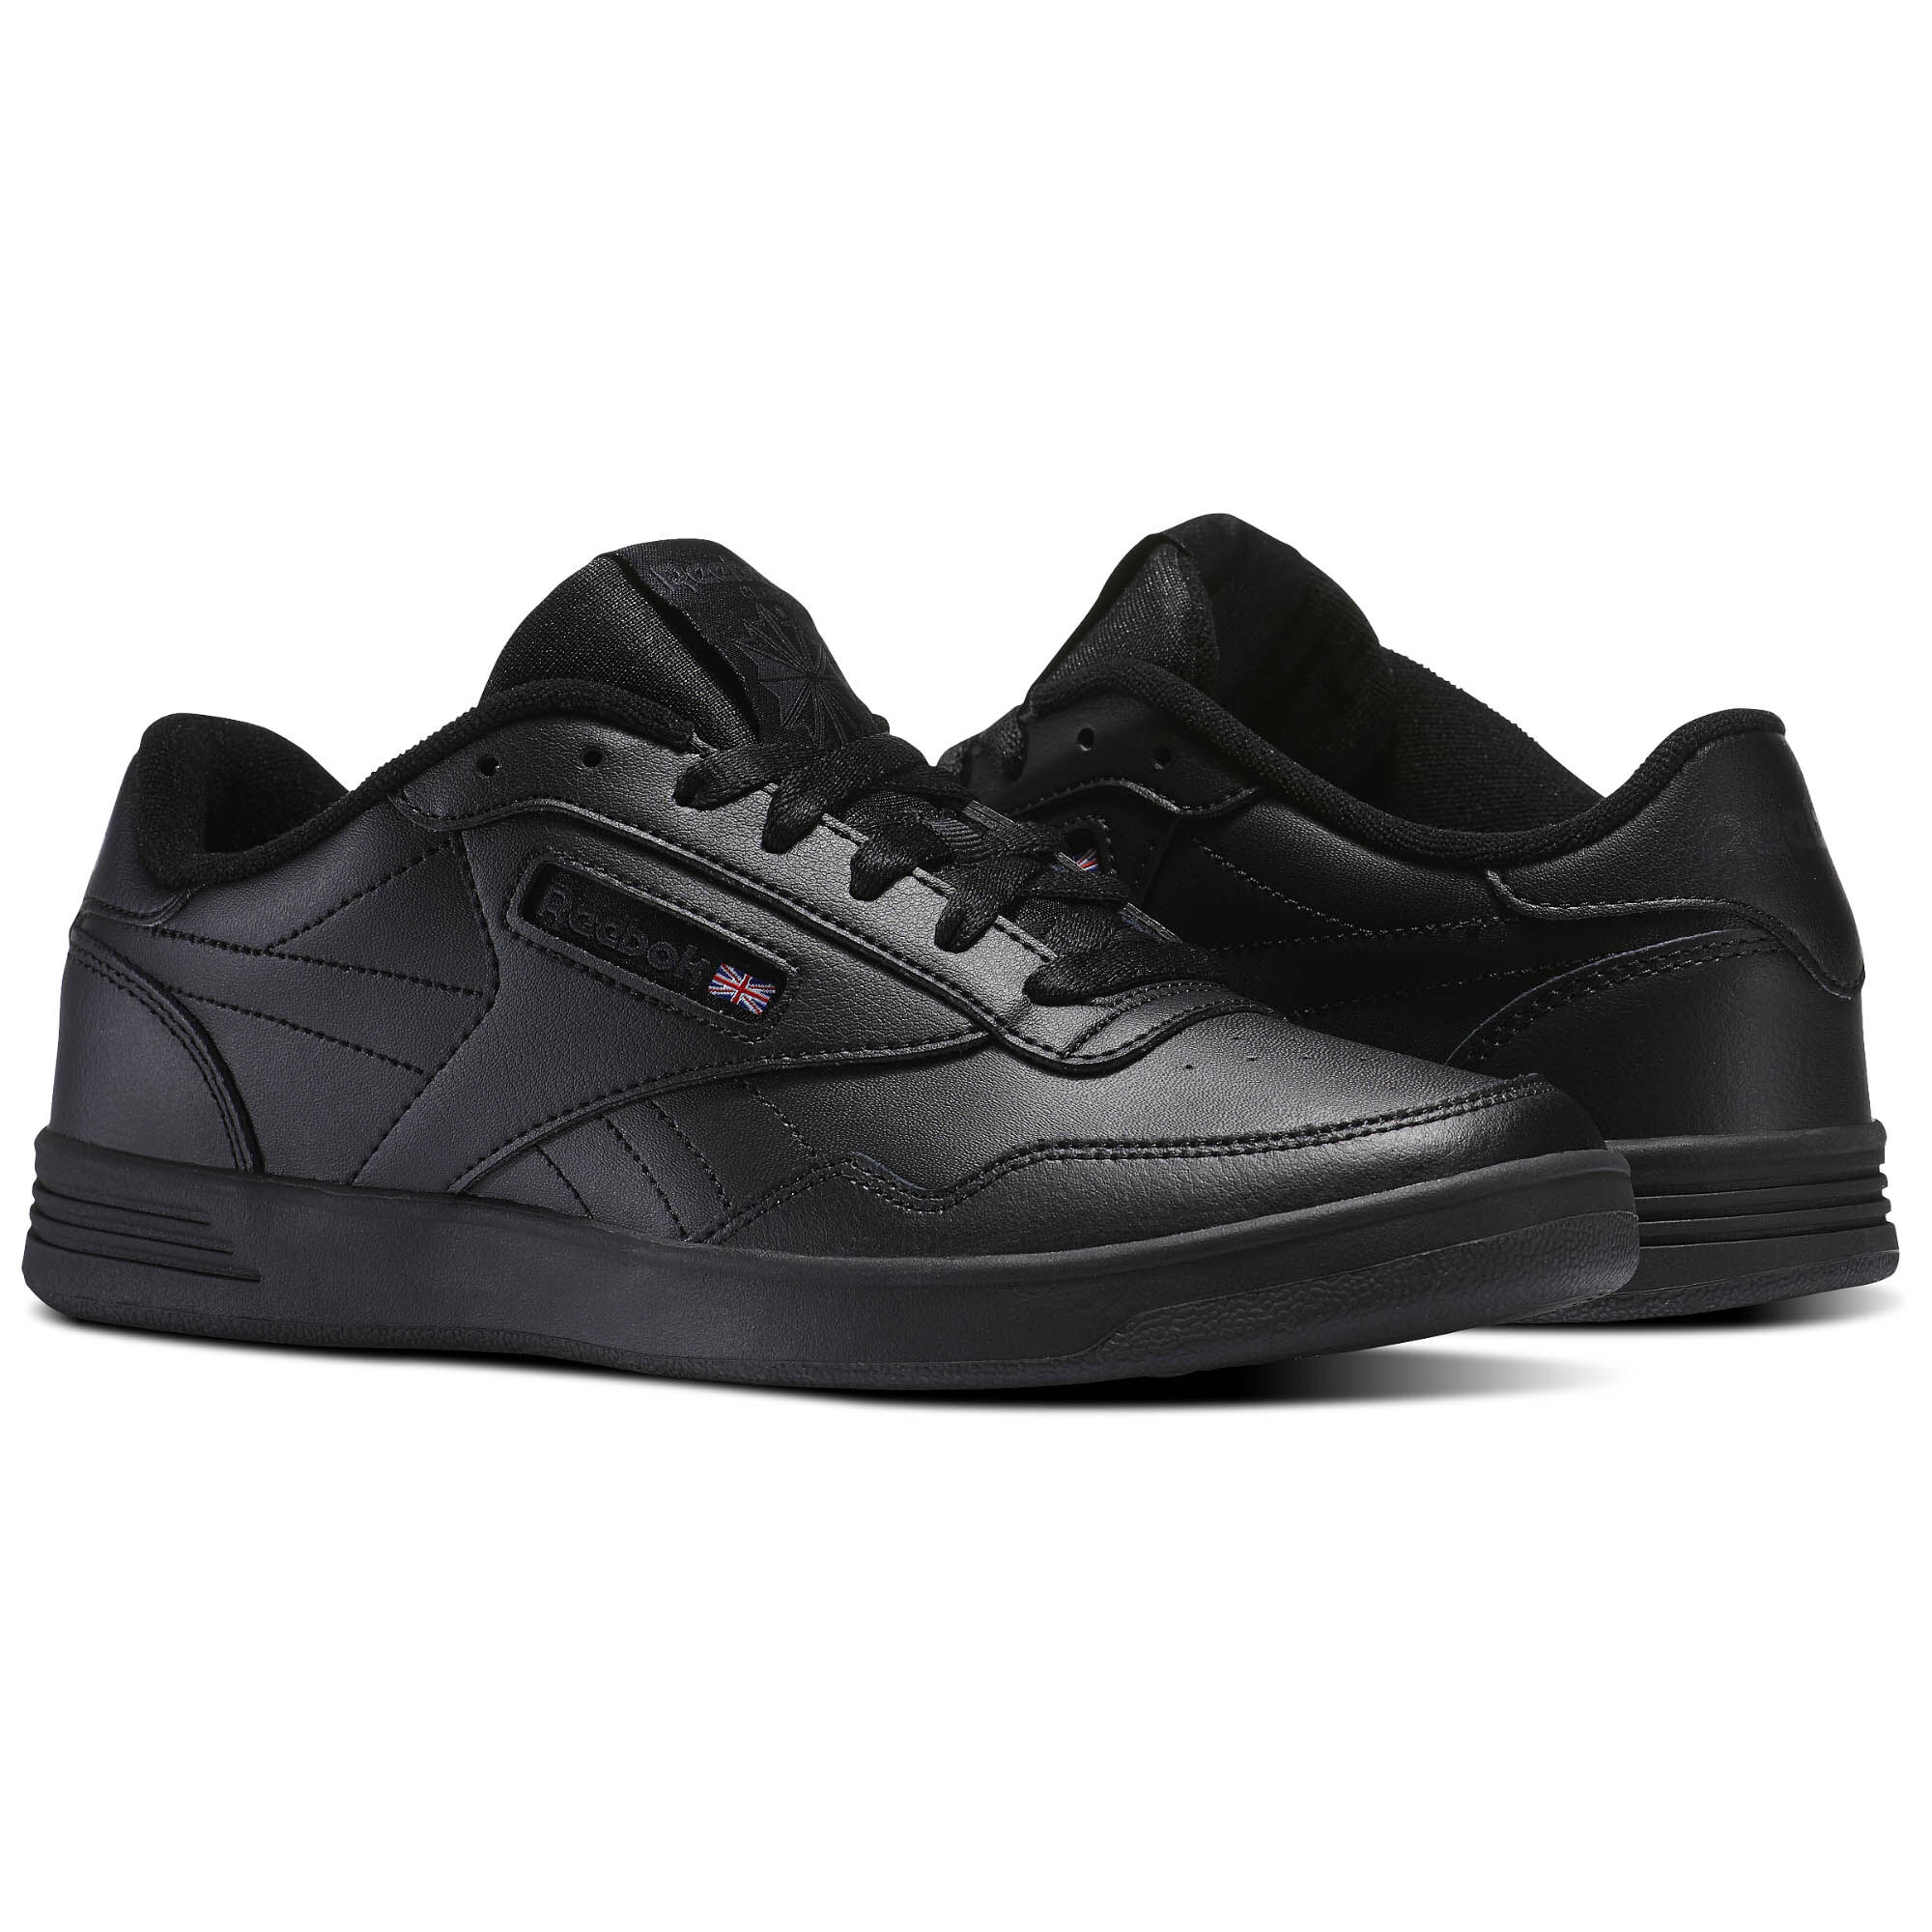 dd4481377edf51 black reebok shoes cheap   OFF55% The Largest Catalog Discounts